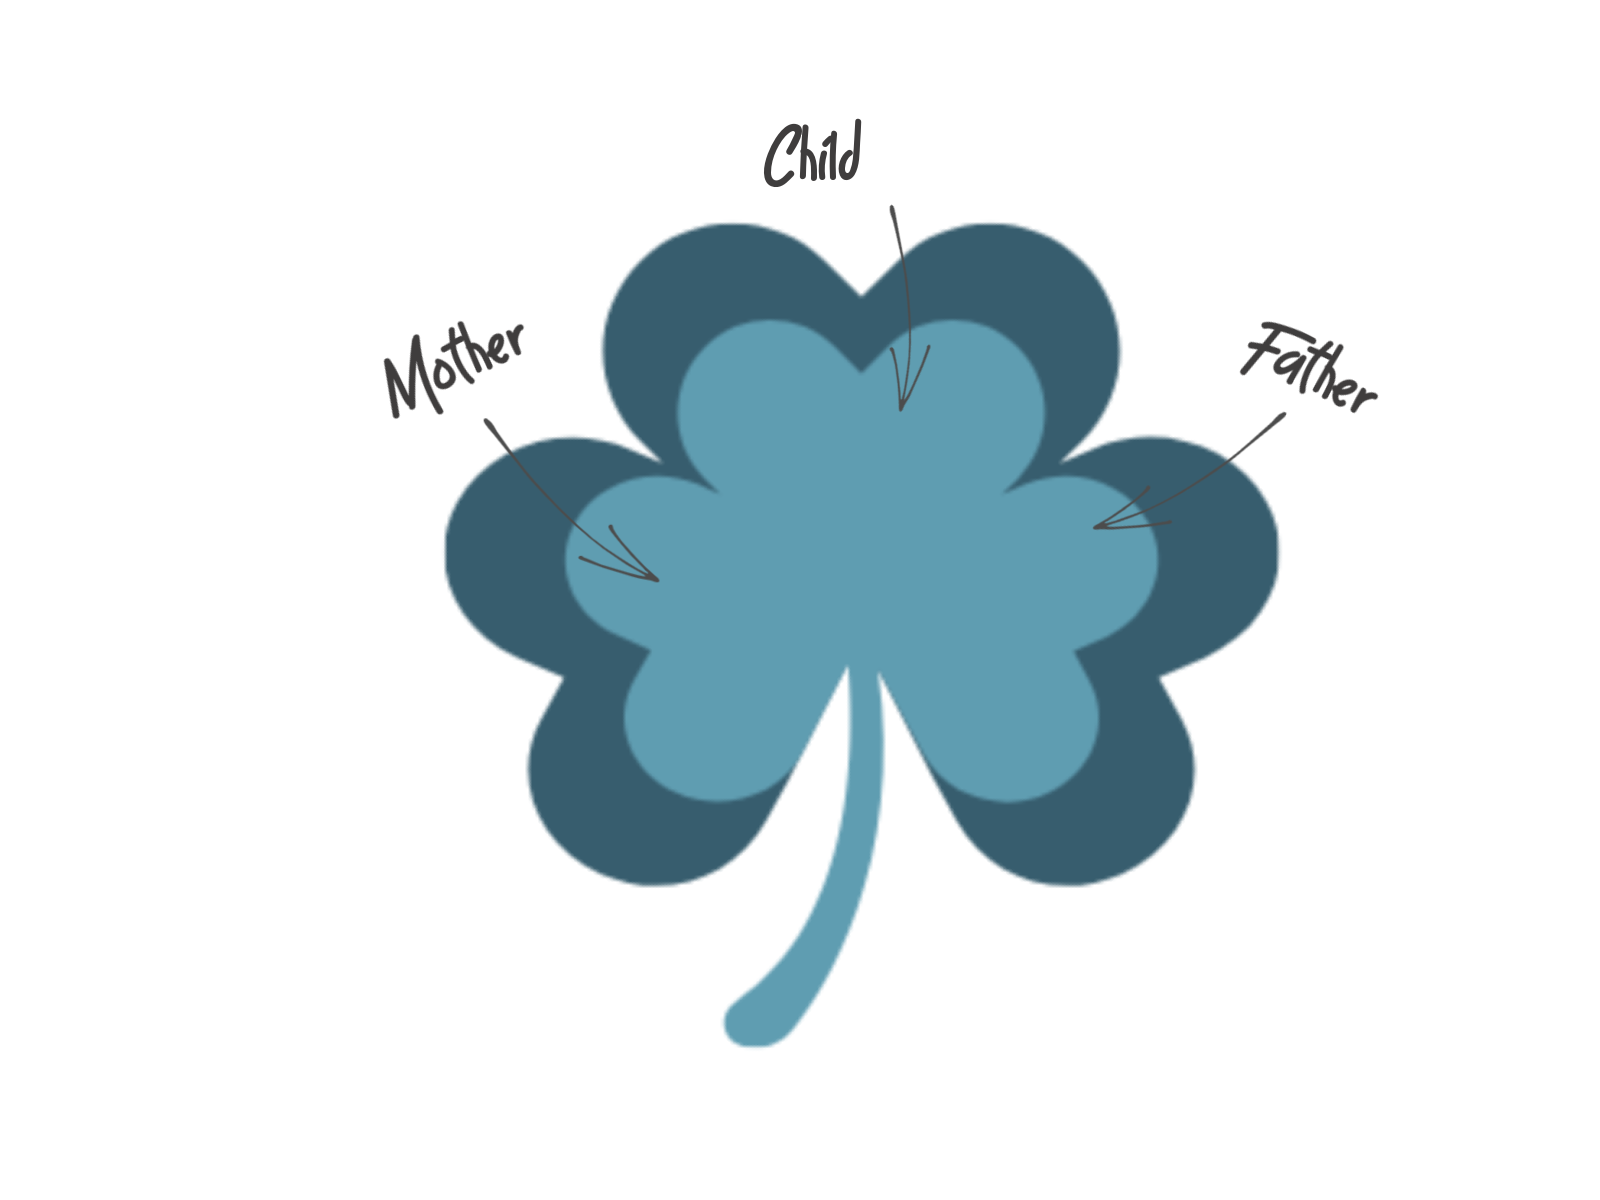 logo of blue 3 leaf clover with arrow pointing to each leaf one for mother, one for father and one for child